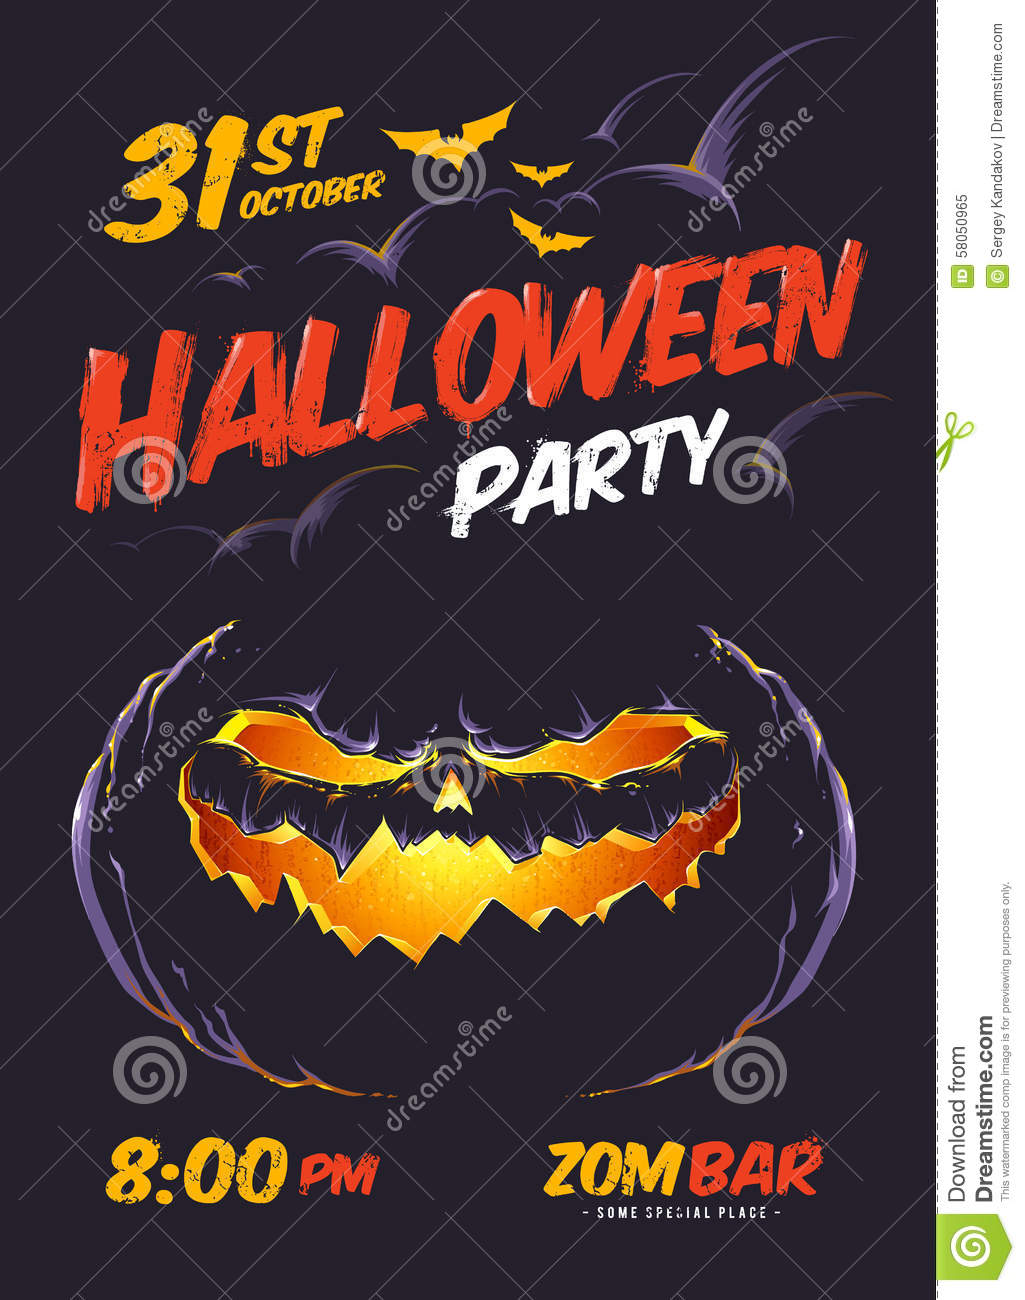 Halloween Party Poster Stock Vector - Image: 58050965